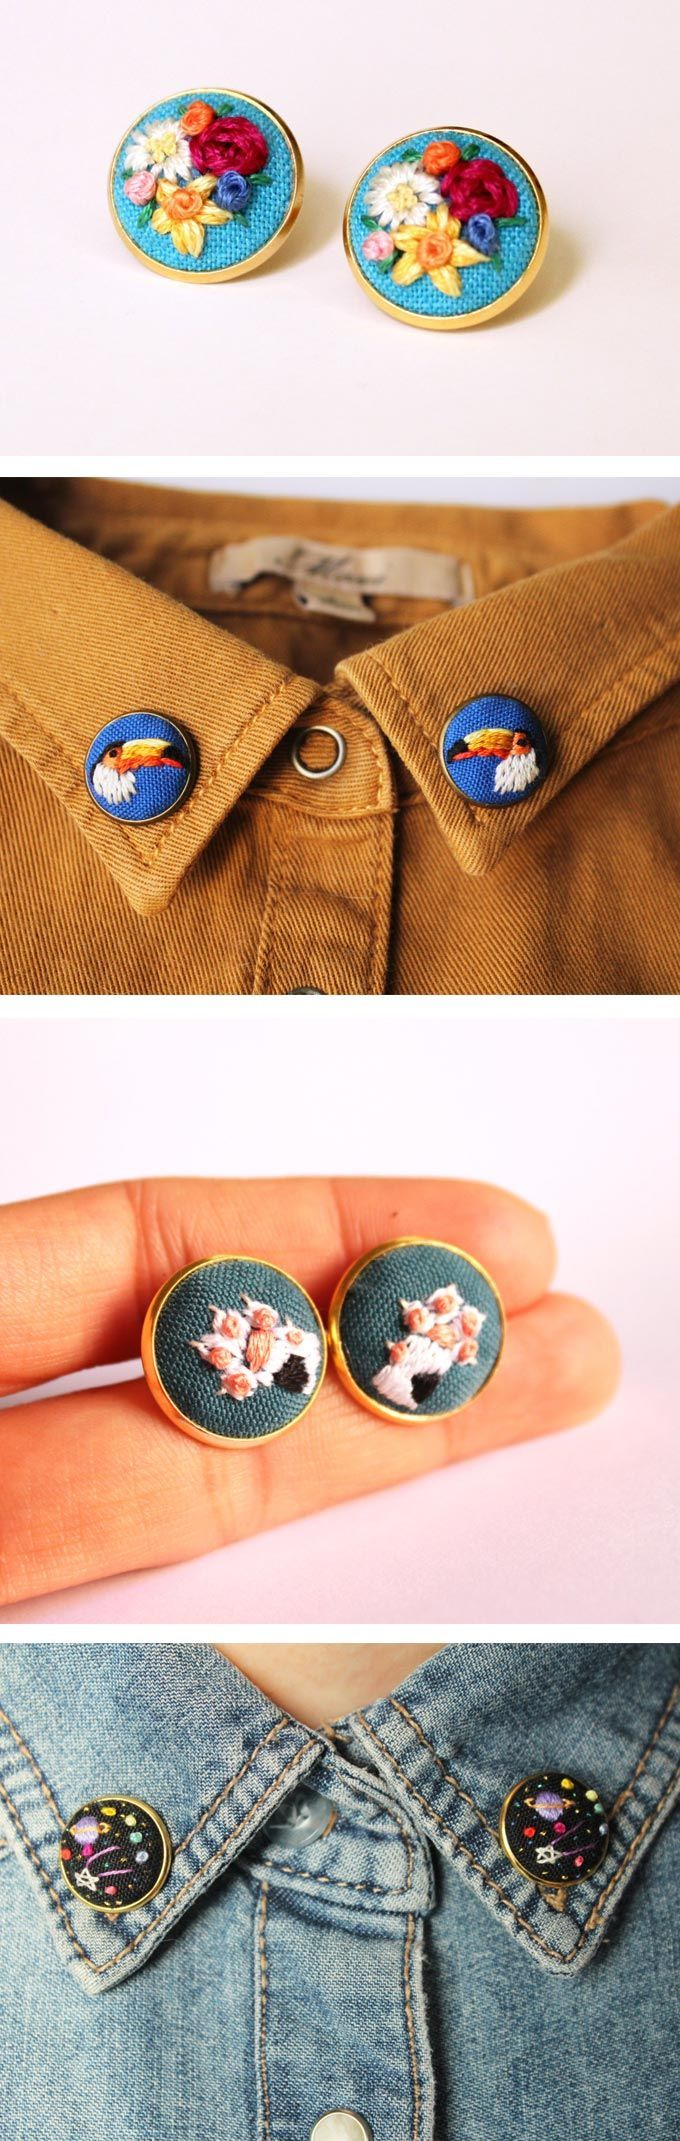 Embroidered collar pins by Baobap | embroidery accessories | quirky clothing